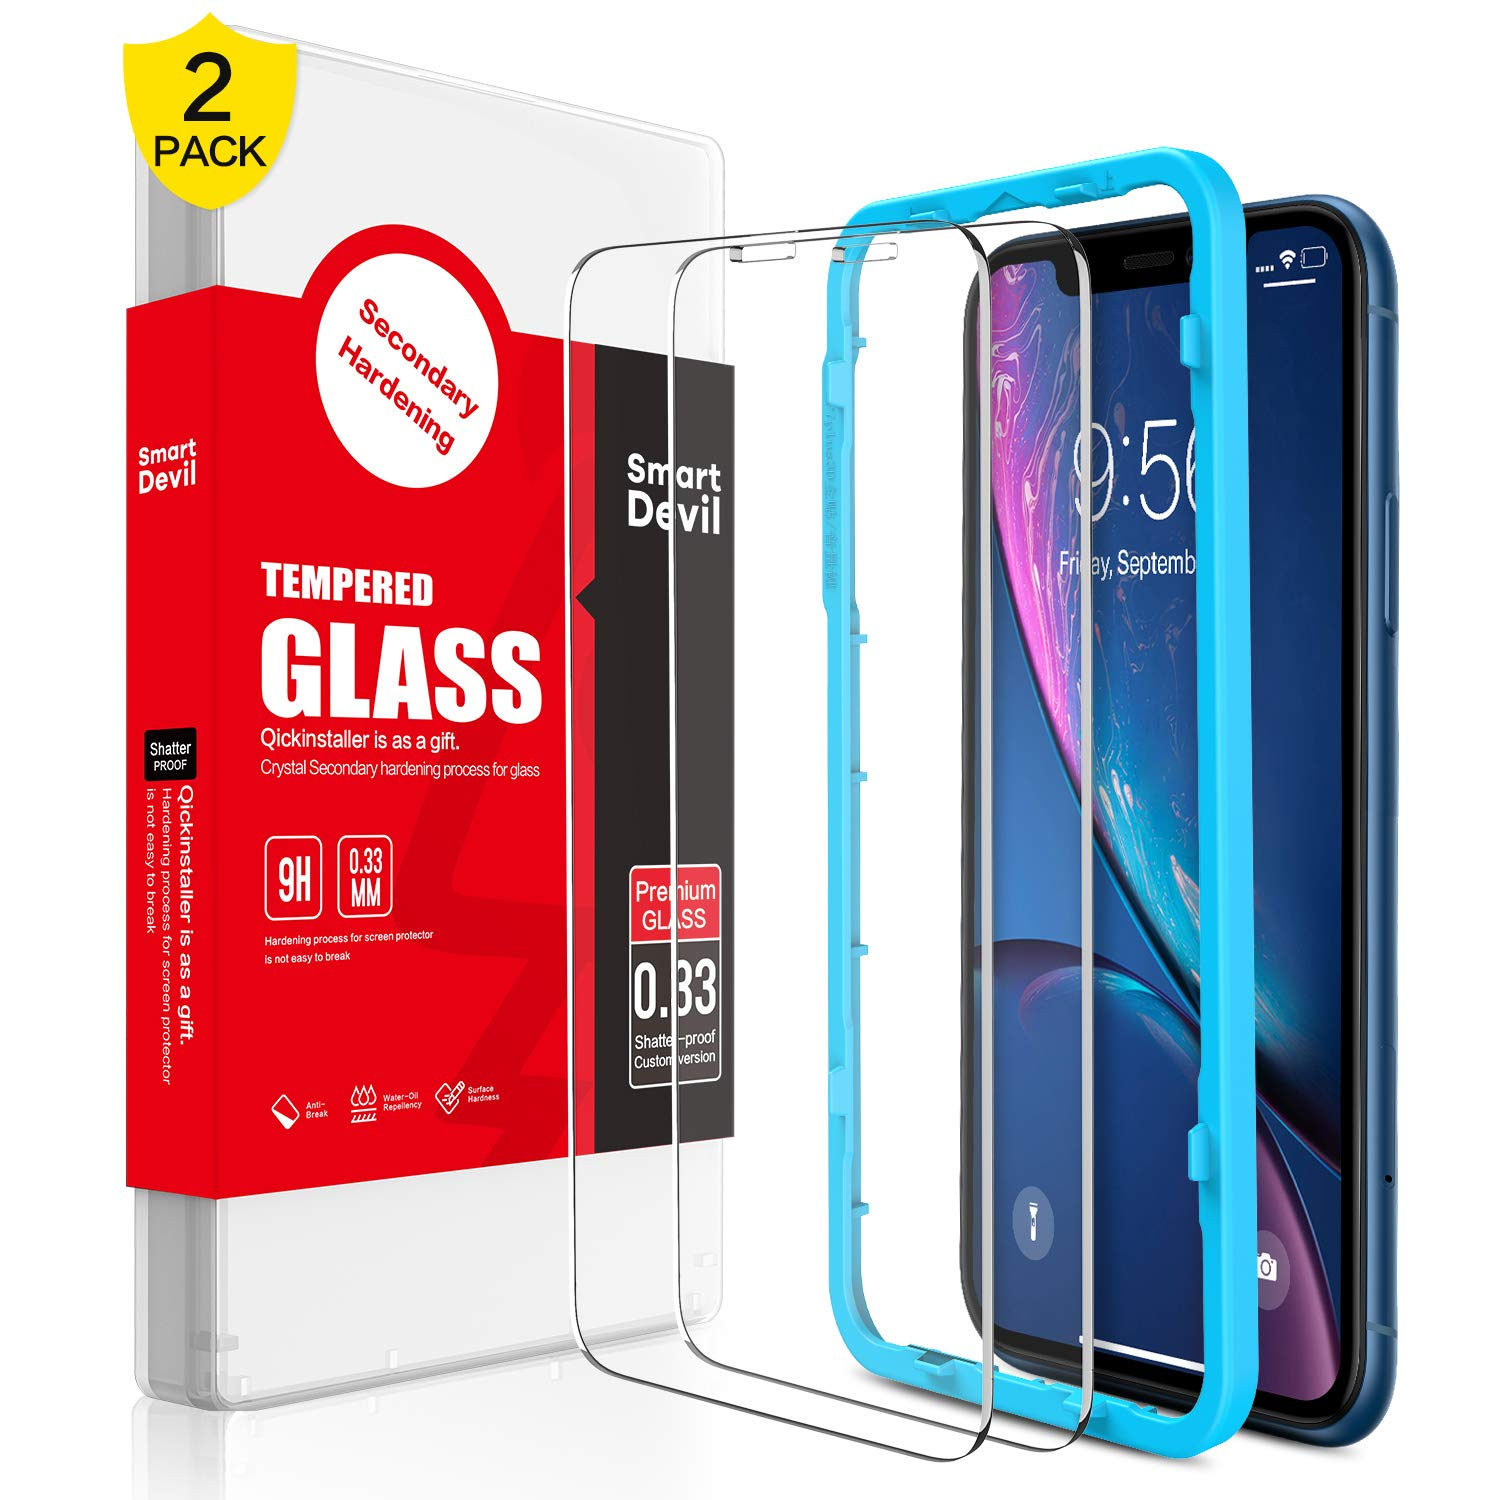 SmartDevil Screen Protector for iPhone XR [2 Pack]